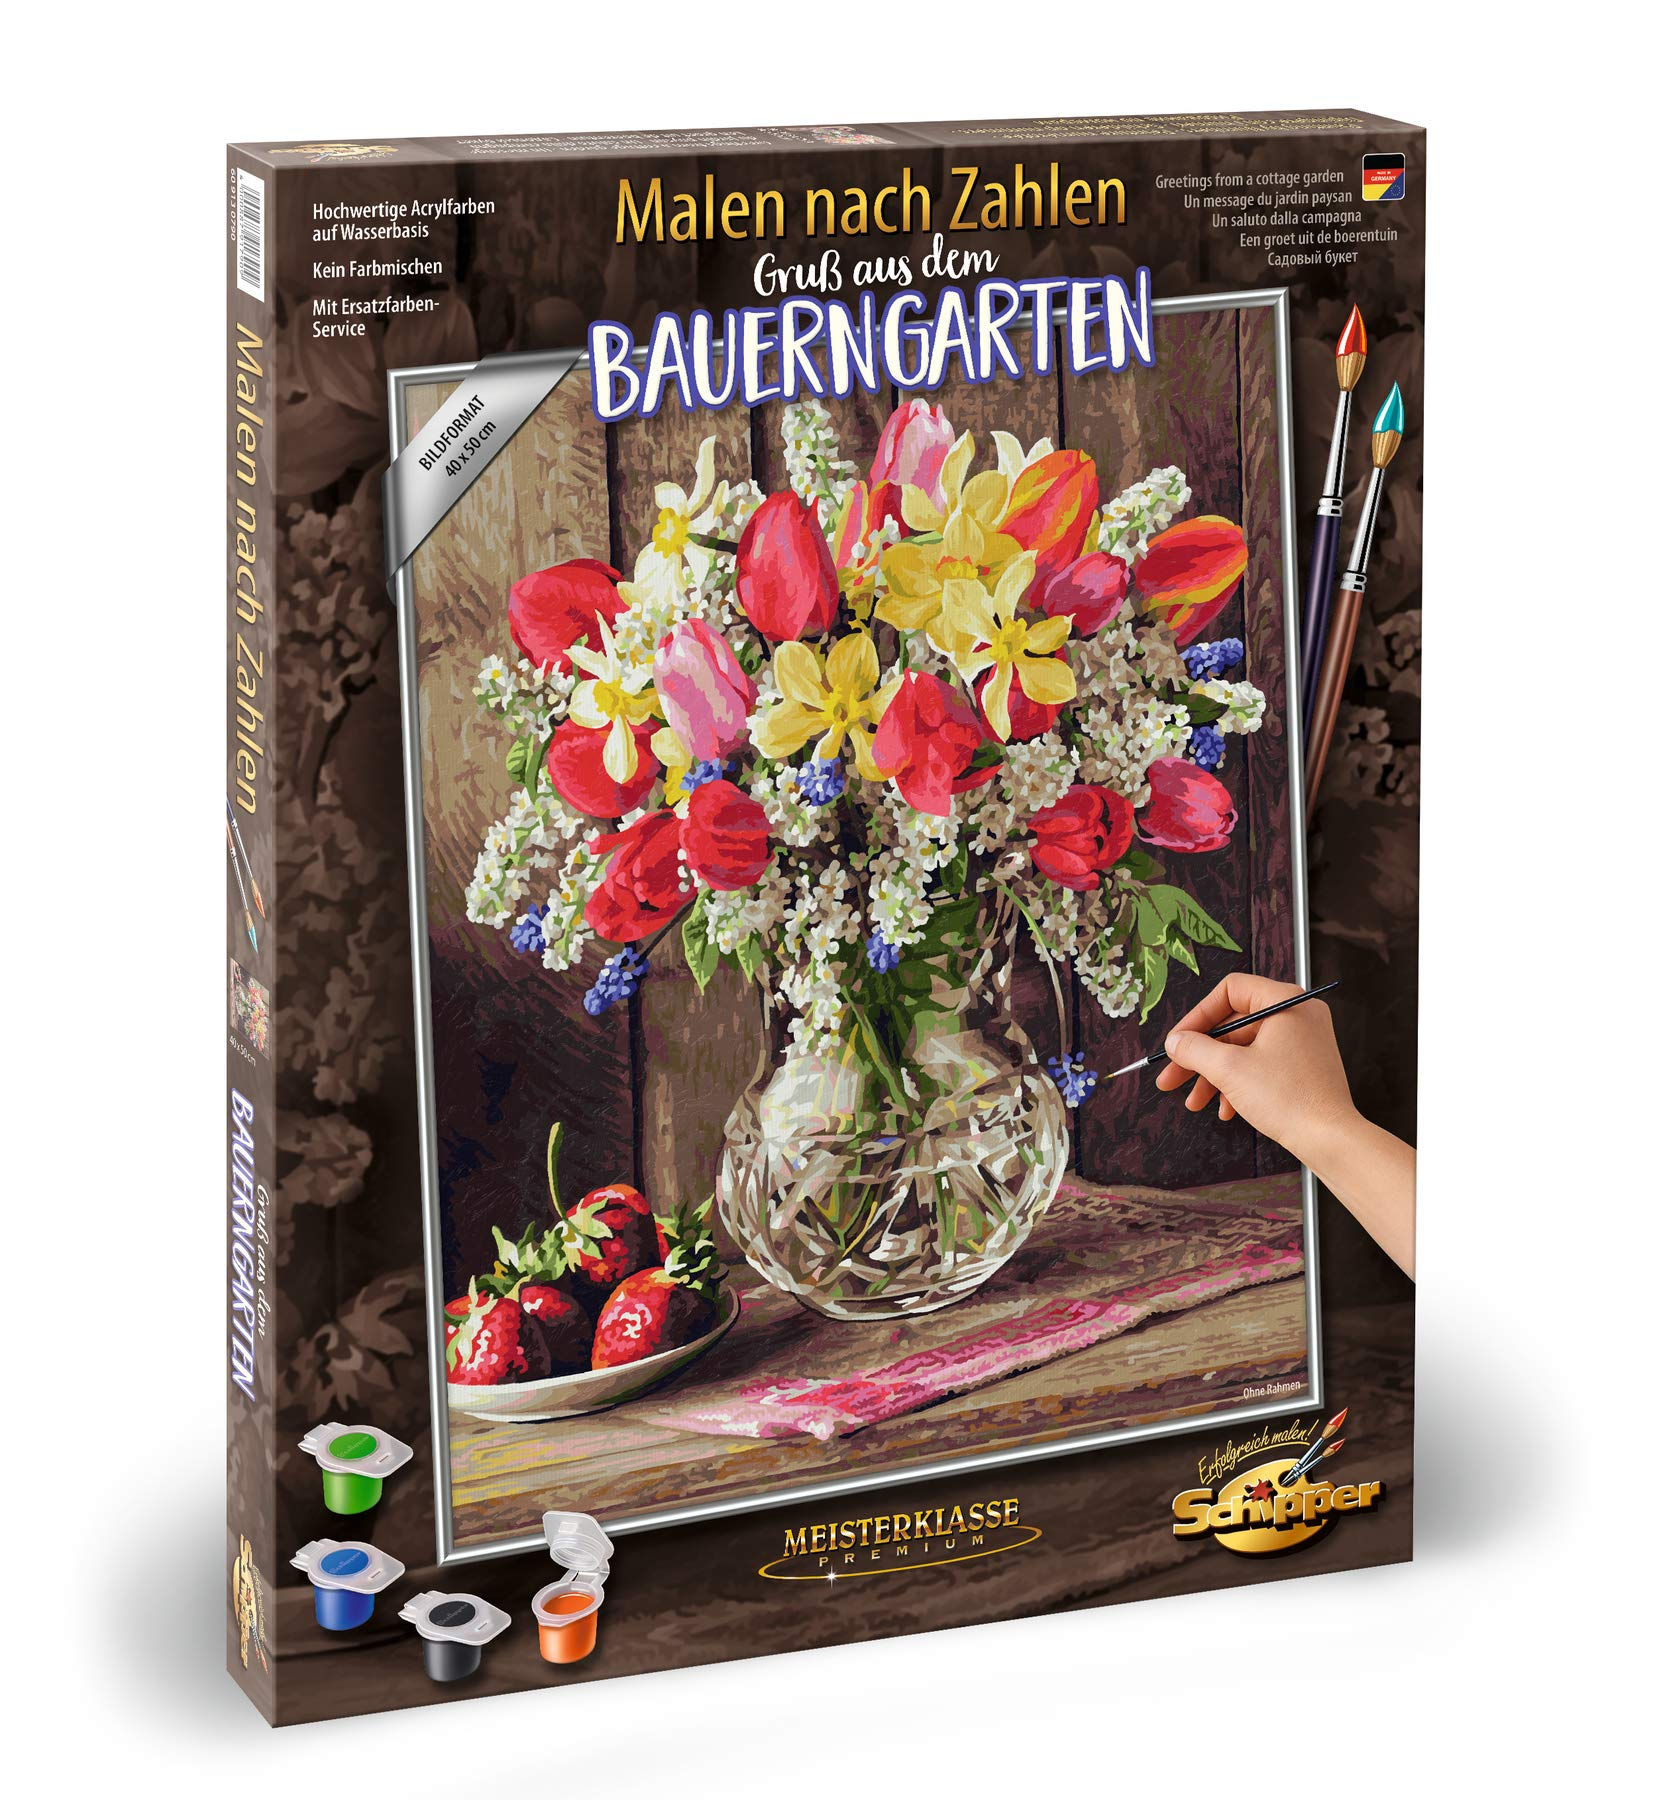 Noris Spiele Schipper Paint by Numbers - 609130790 A Greeting from The Cottage Garden, 40 x 50 cm Multi-Coloured by Noris Spiele